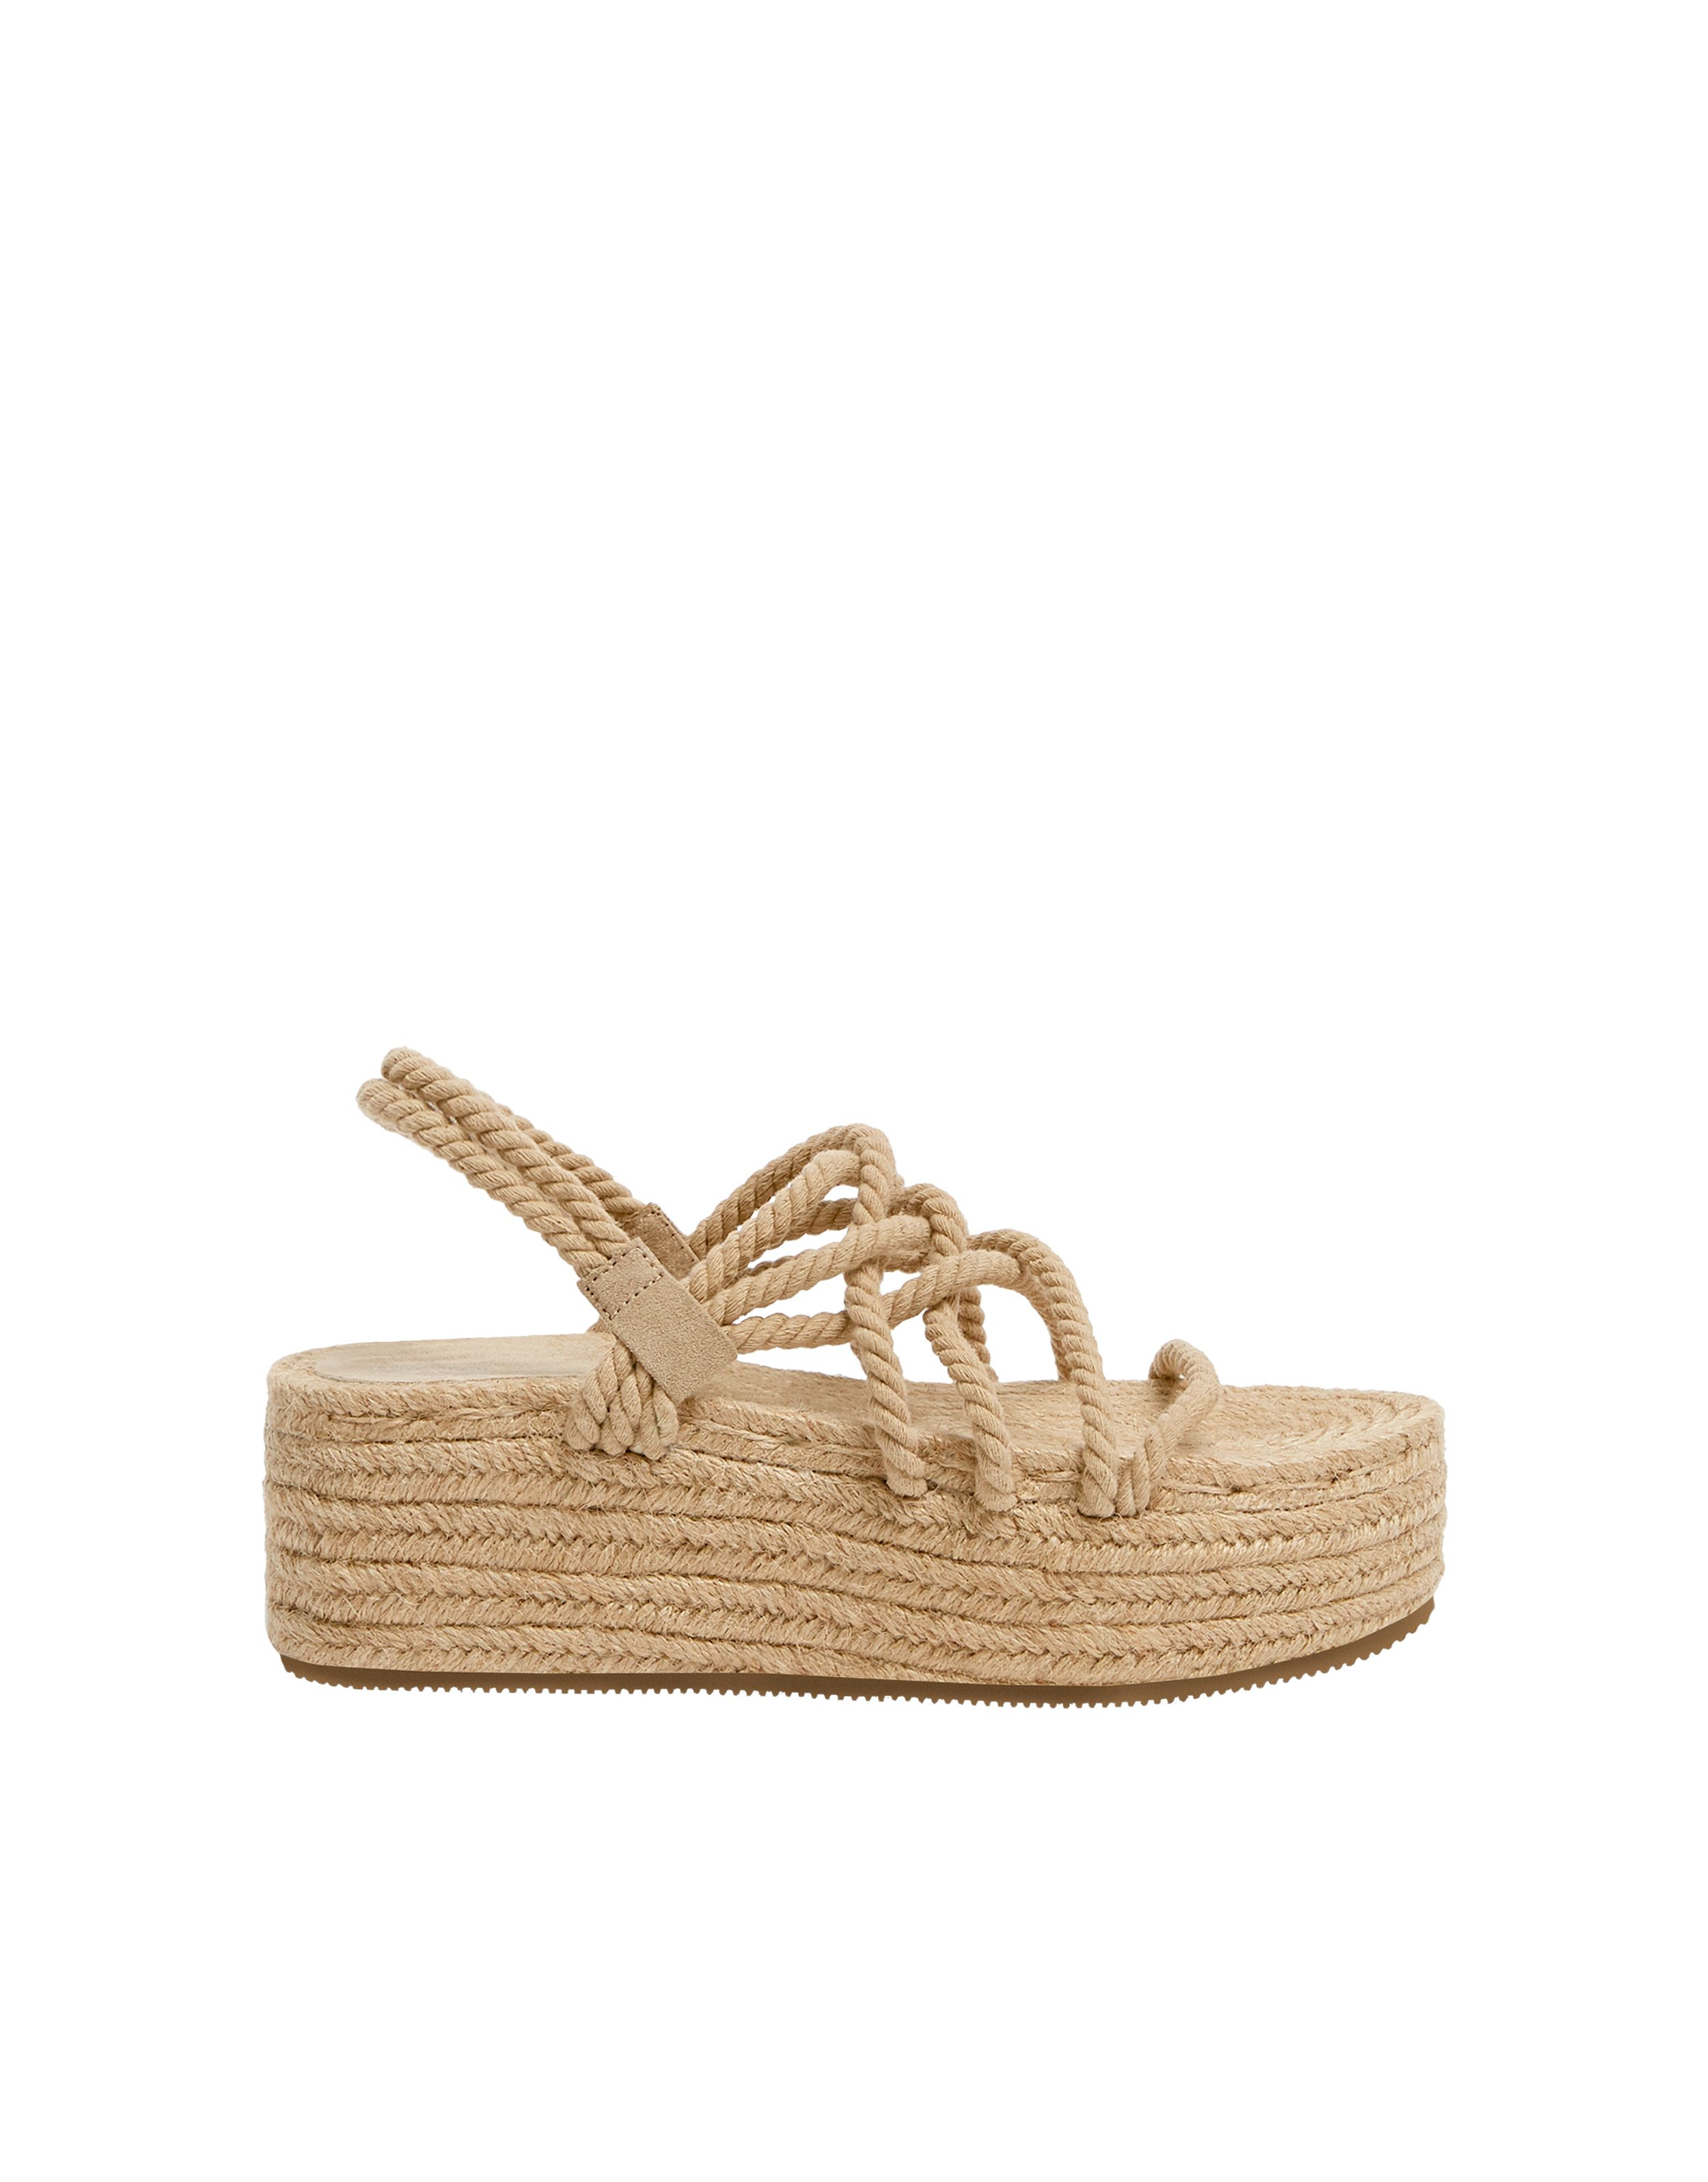 Jute Wedges With Rope Straps Rope Sandals Shoe Design Sketches Sandals